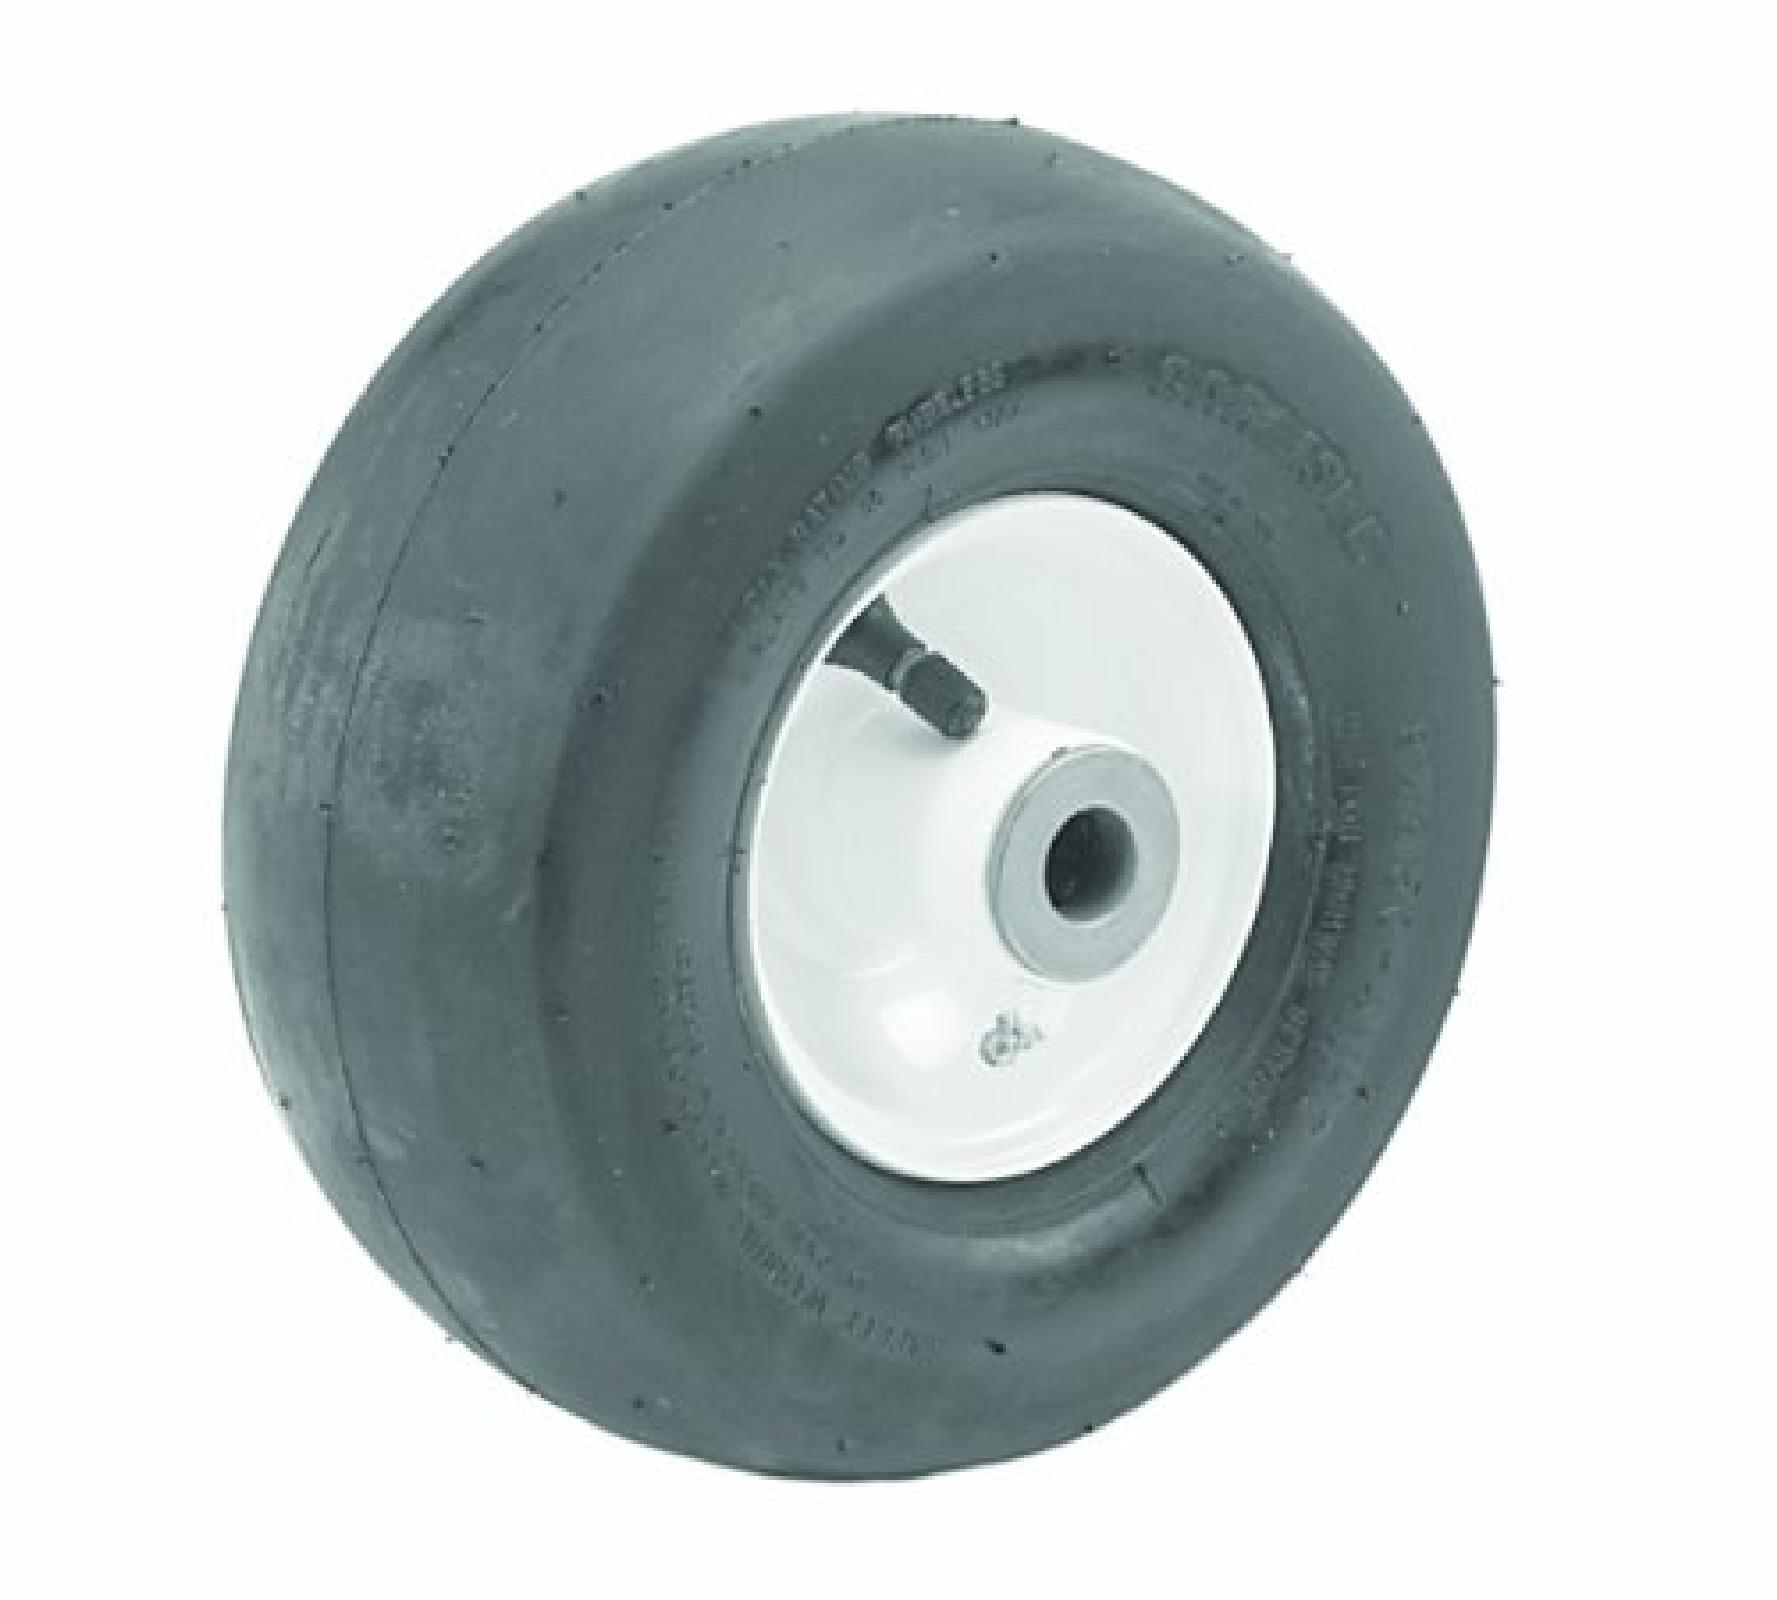 WHEEL ASSY EXMARK 9X350 4 part# 72-722 by Oregon